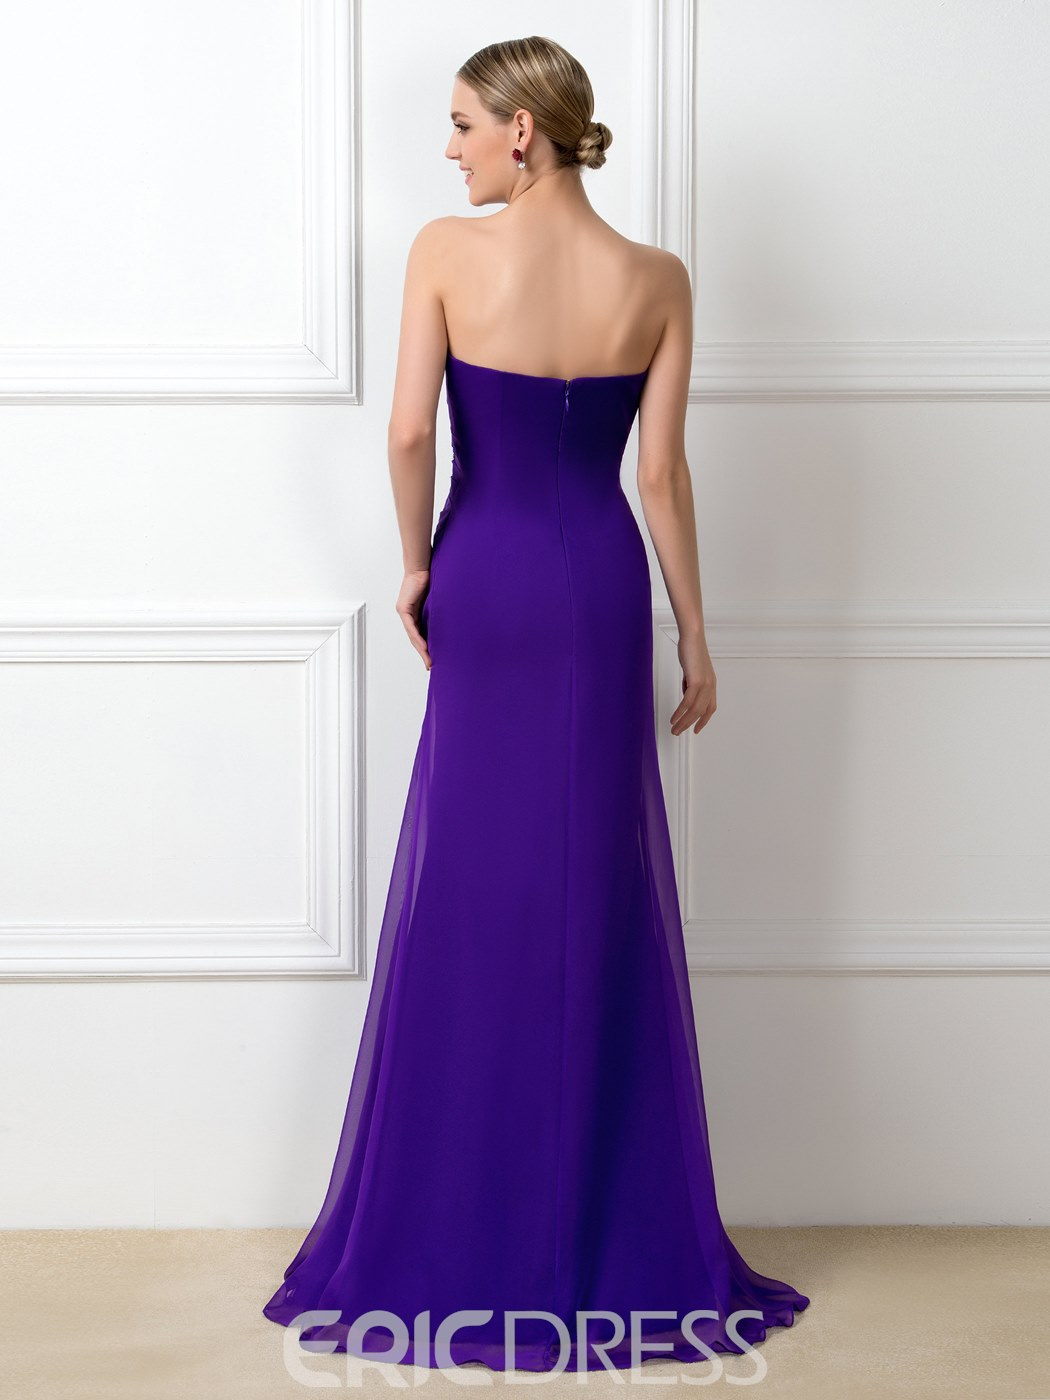 Concise A-Line Strapless Ruched Crystal Floor-Length Bridesmaid Dress